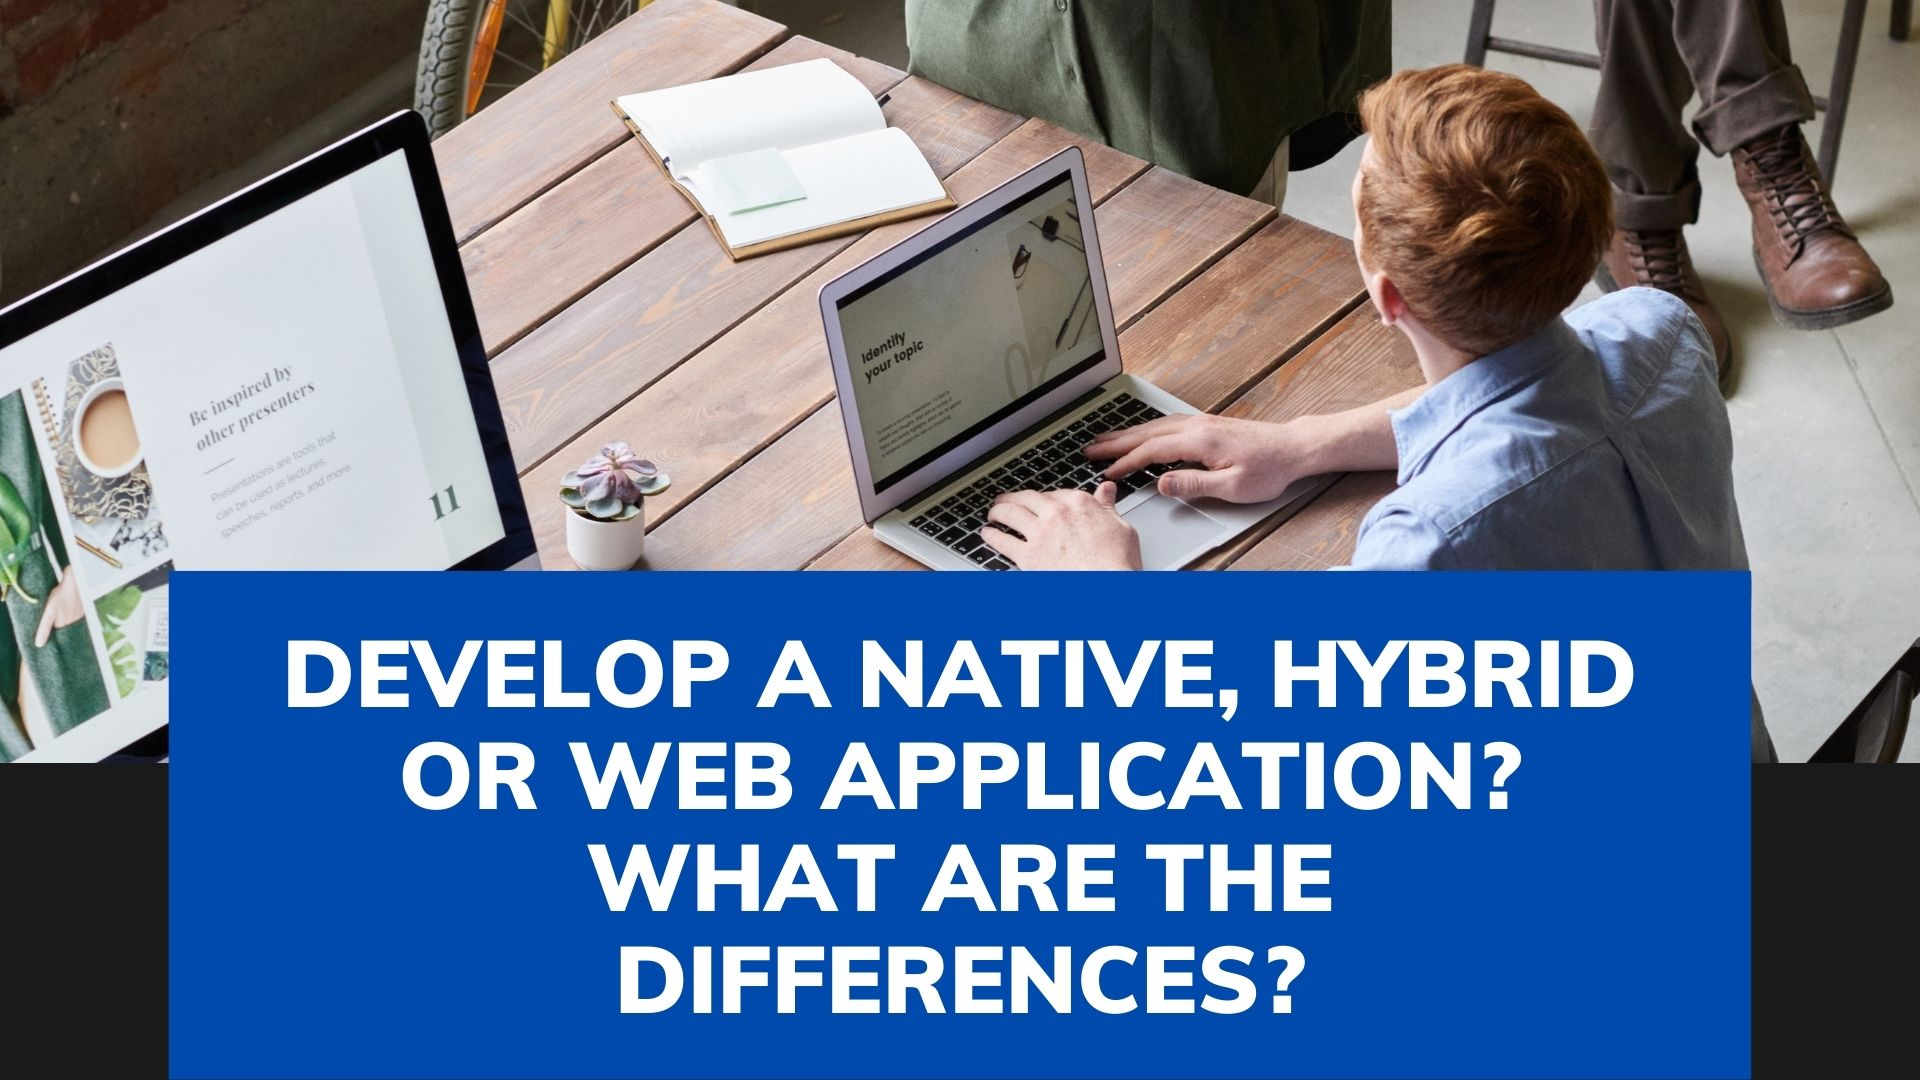 Develop a Native, Hybrid or Web application? What are the differences?